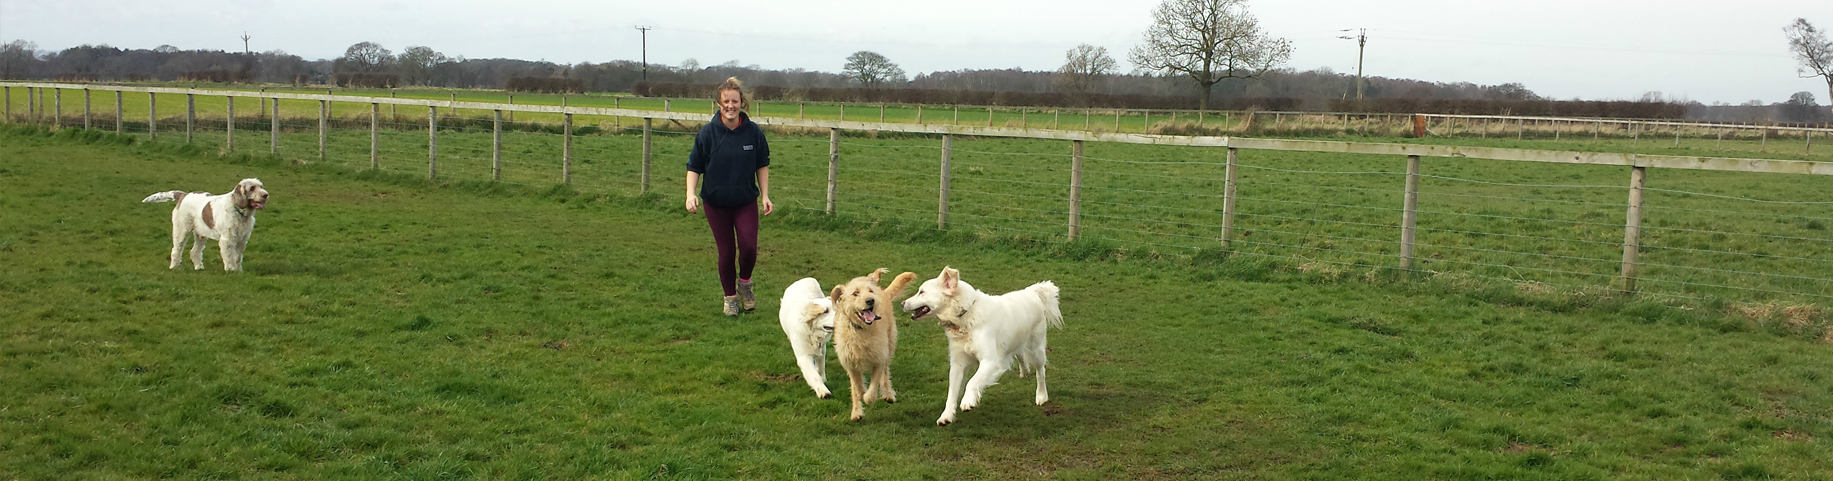 Derrings Kennels can accommodate any exercise routine your pet may need, call us for more information